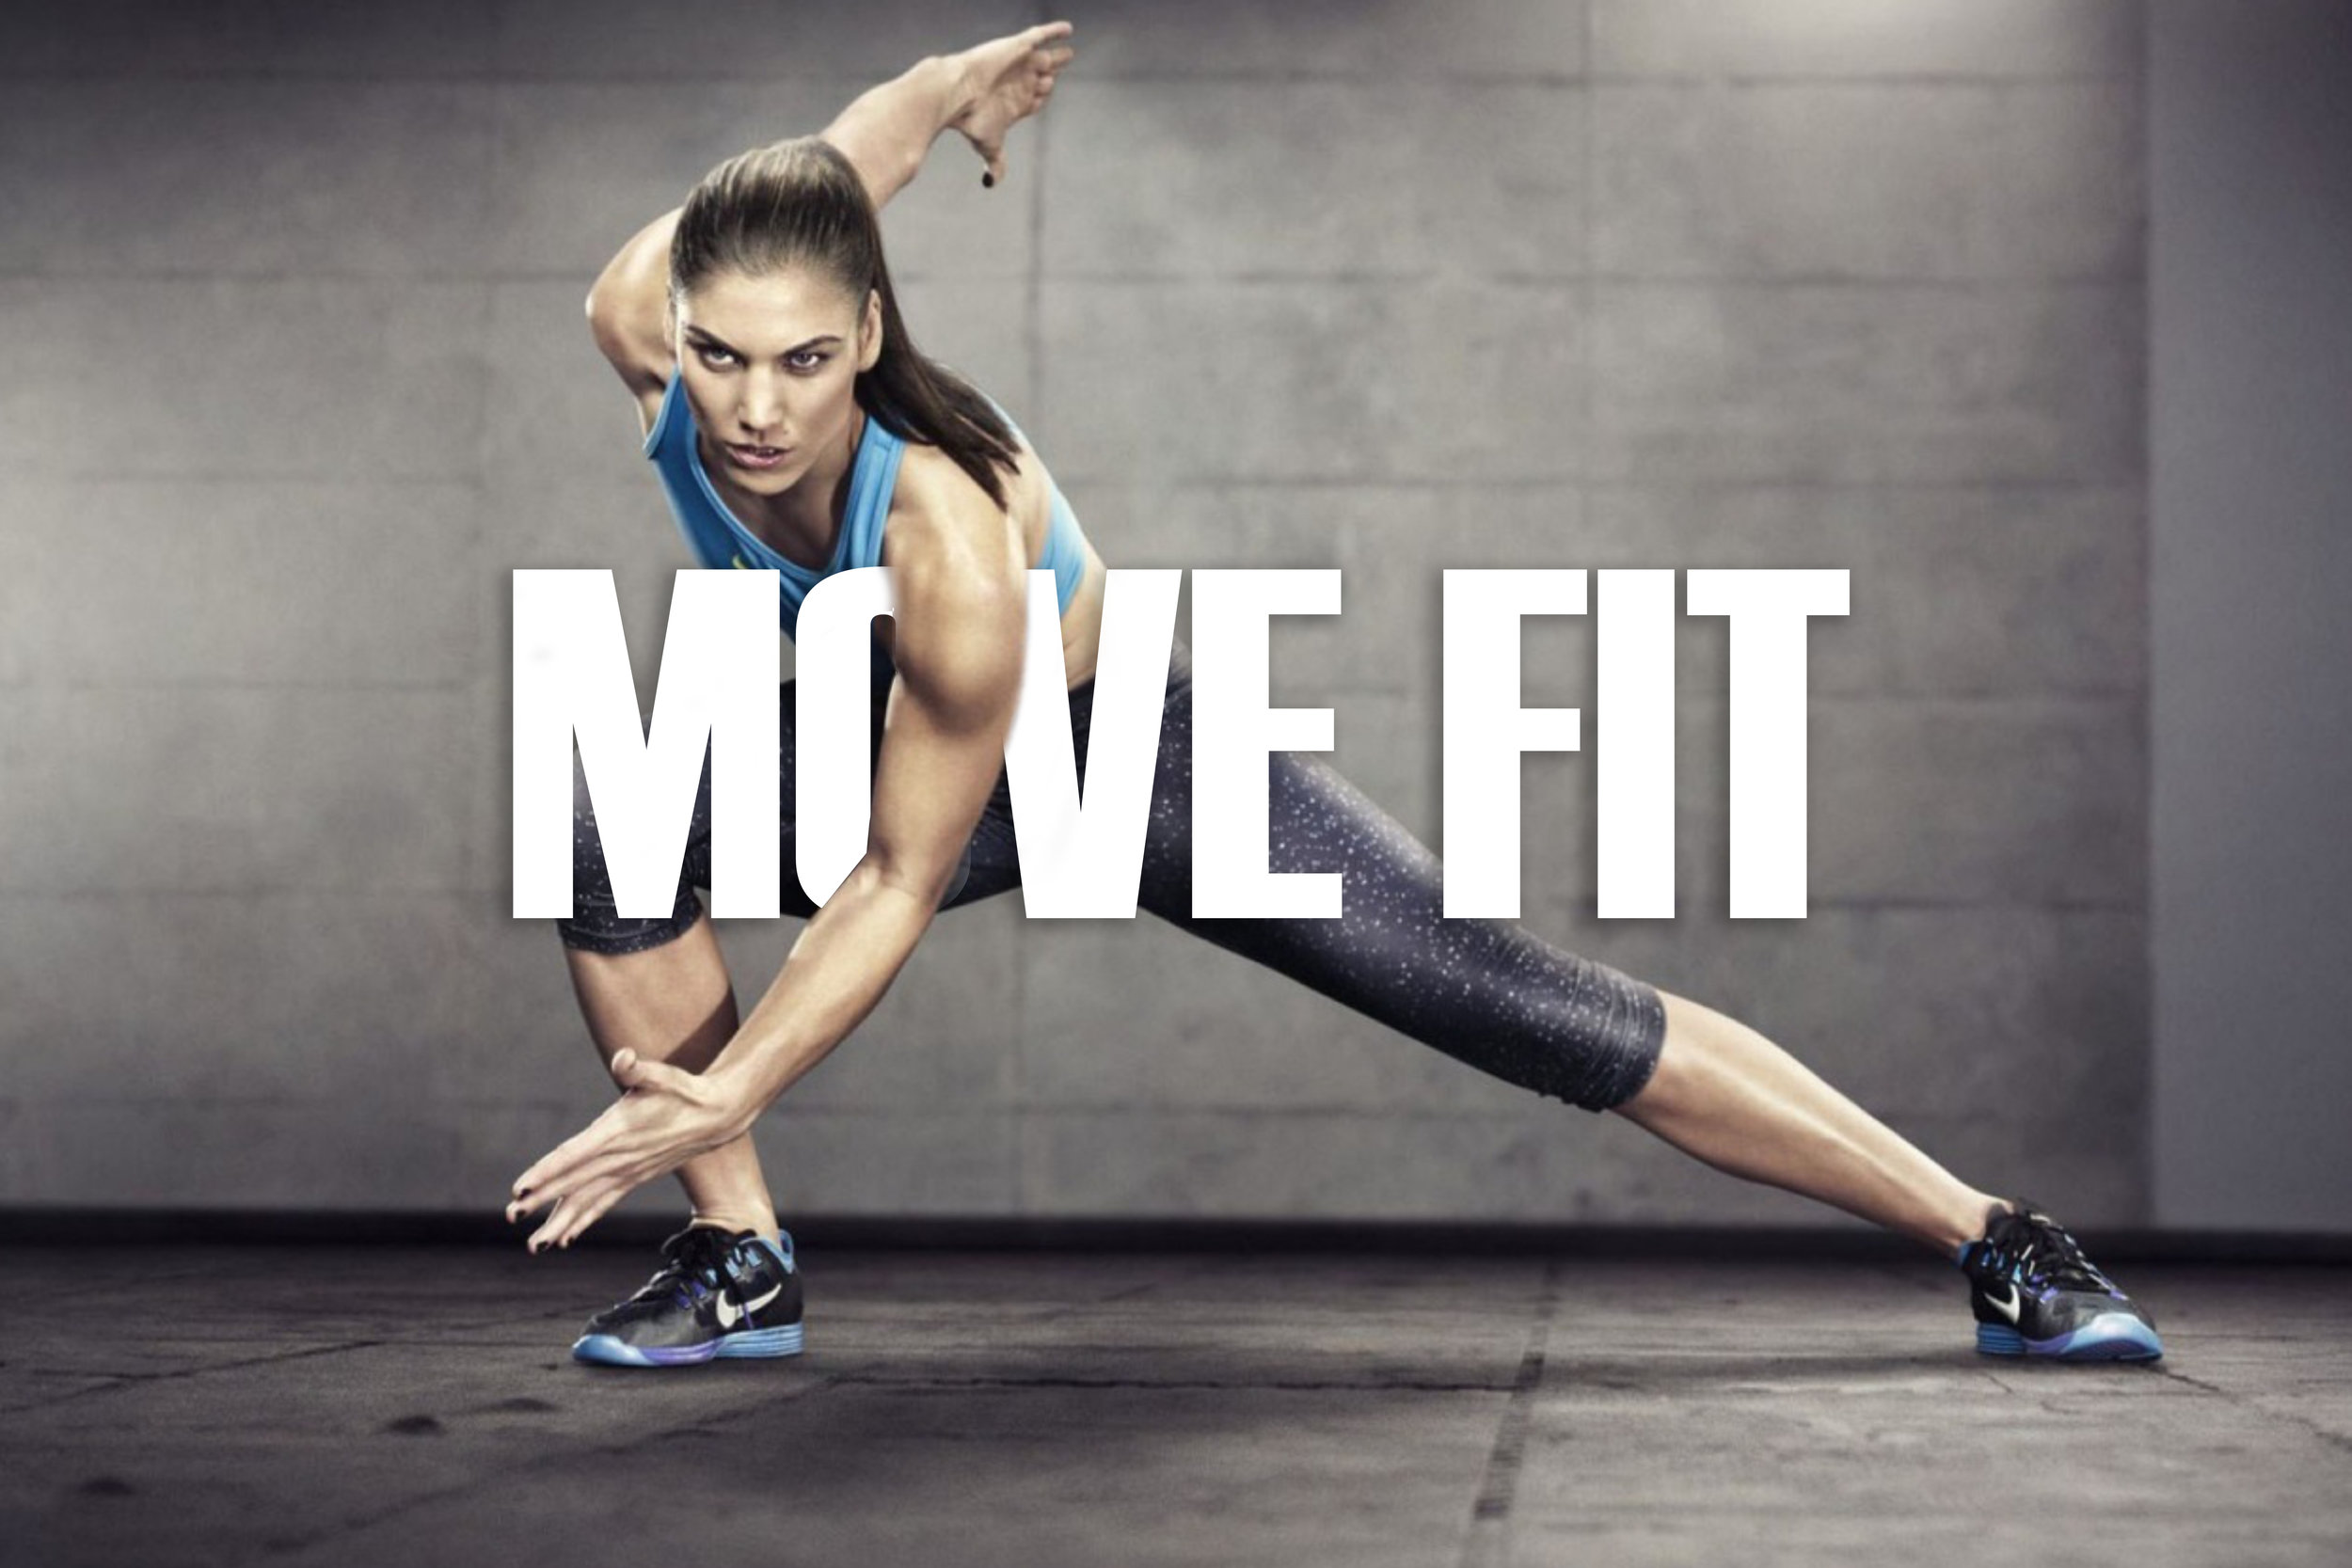 Move Fit - Sweat, shake, and move your body like never before with Move FIT! A fitness program that combines high intensity music with the latest dance moves to create one epic workout. Move Fit incorporates interval training — alternating fast and slow rhythms — and resistance training.